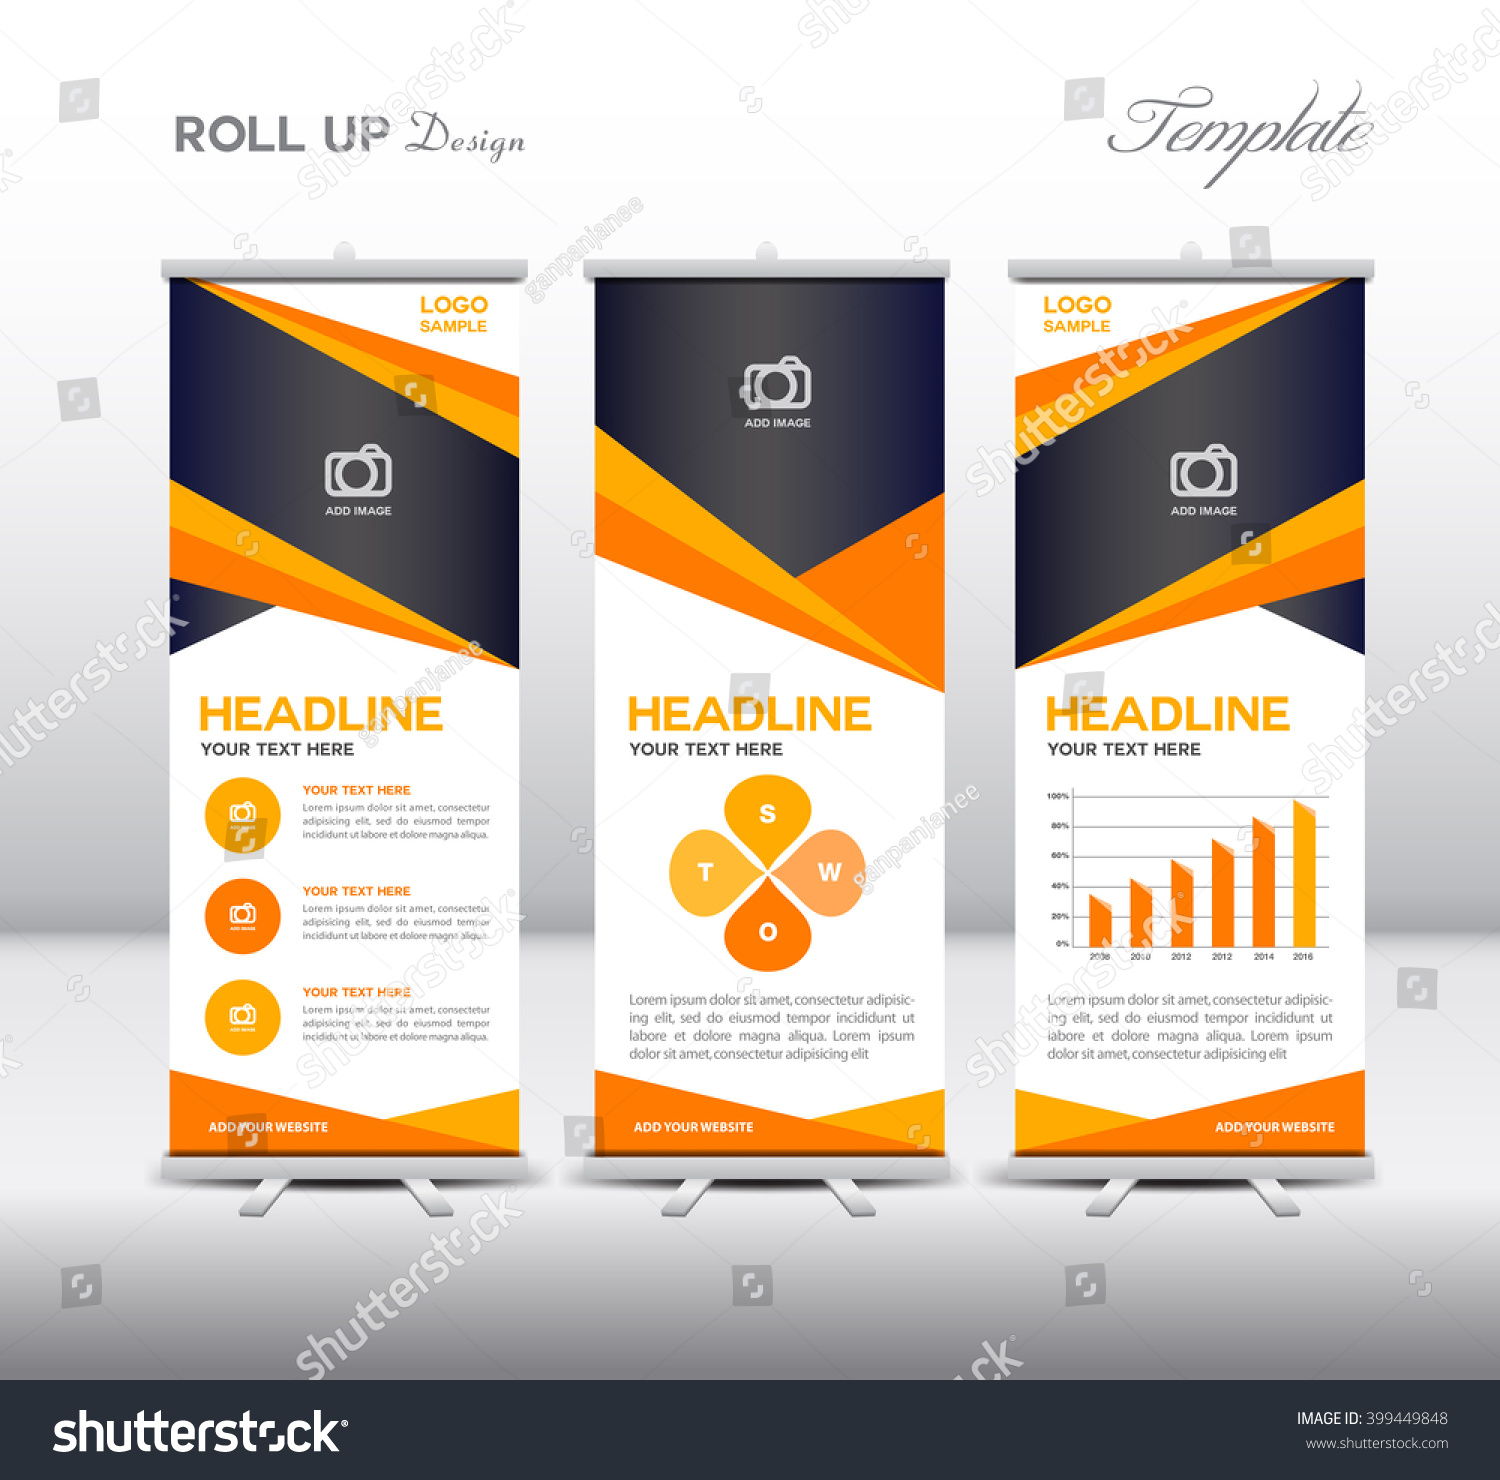 orange roll banner template info graphics stock vector  orange roll up banner template and info graphics elements stand design advertisement display